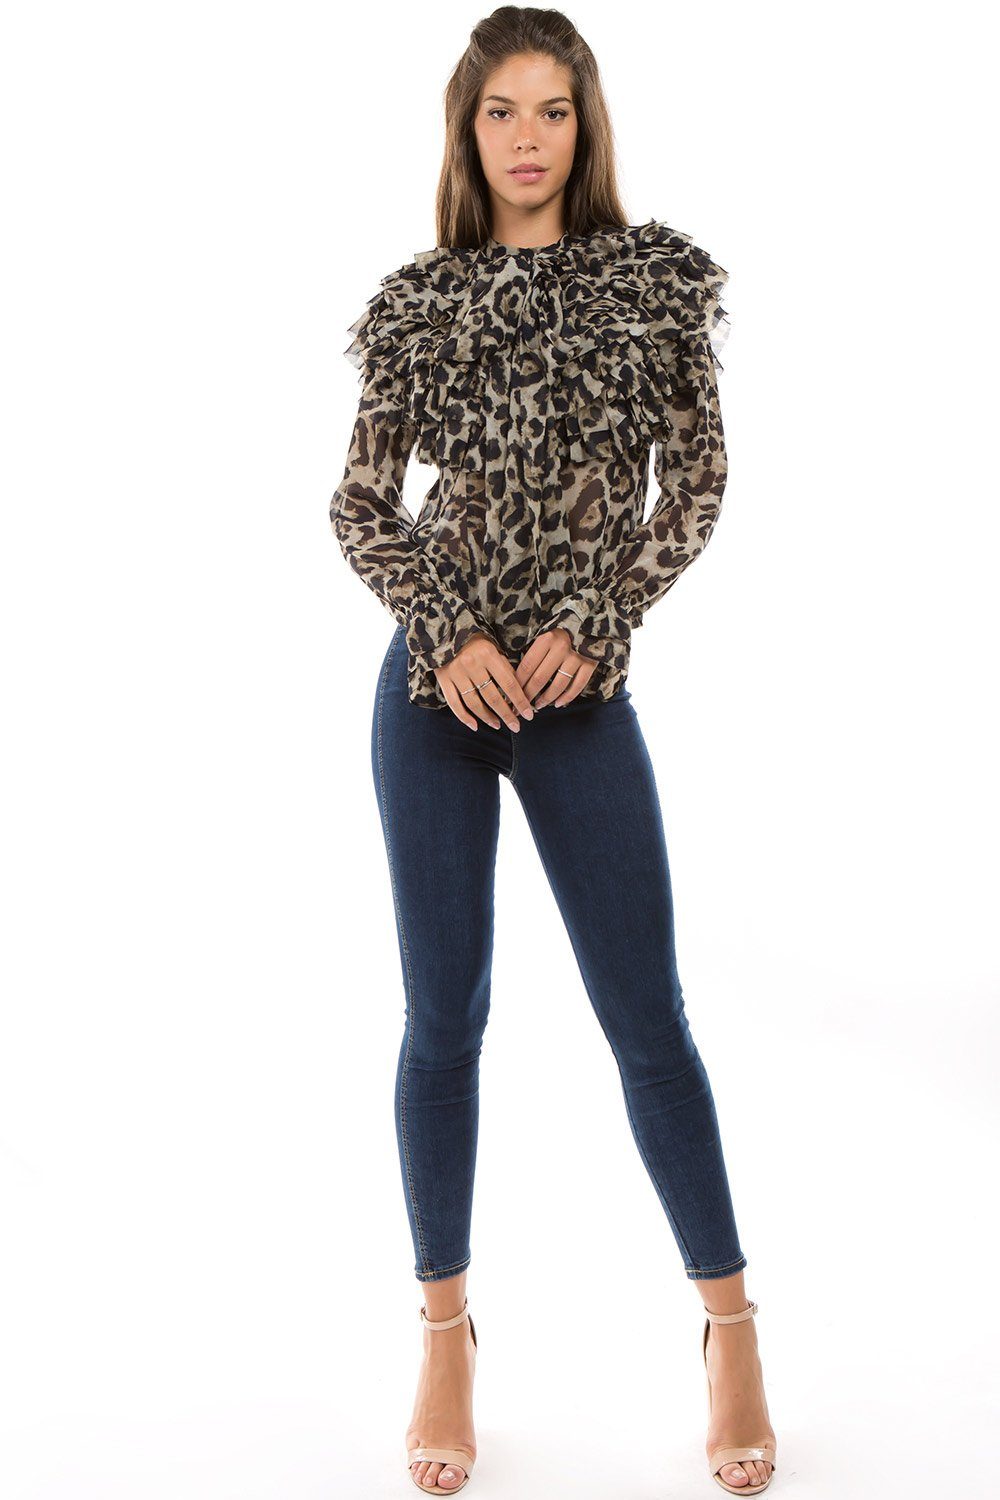 dd199abe03ff9 Leopard Print Layered Ruffle with Tie Neck Blouse -  TI044-F02 ...